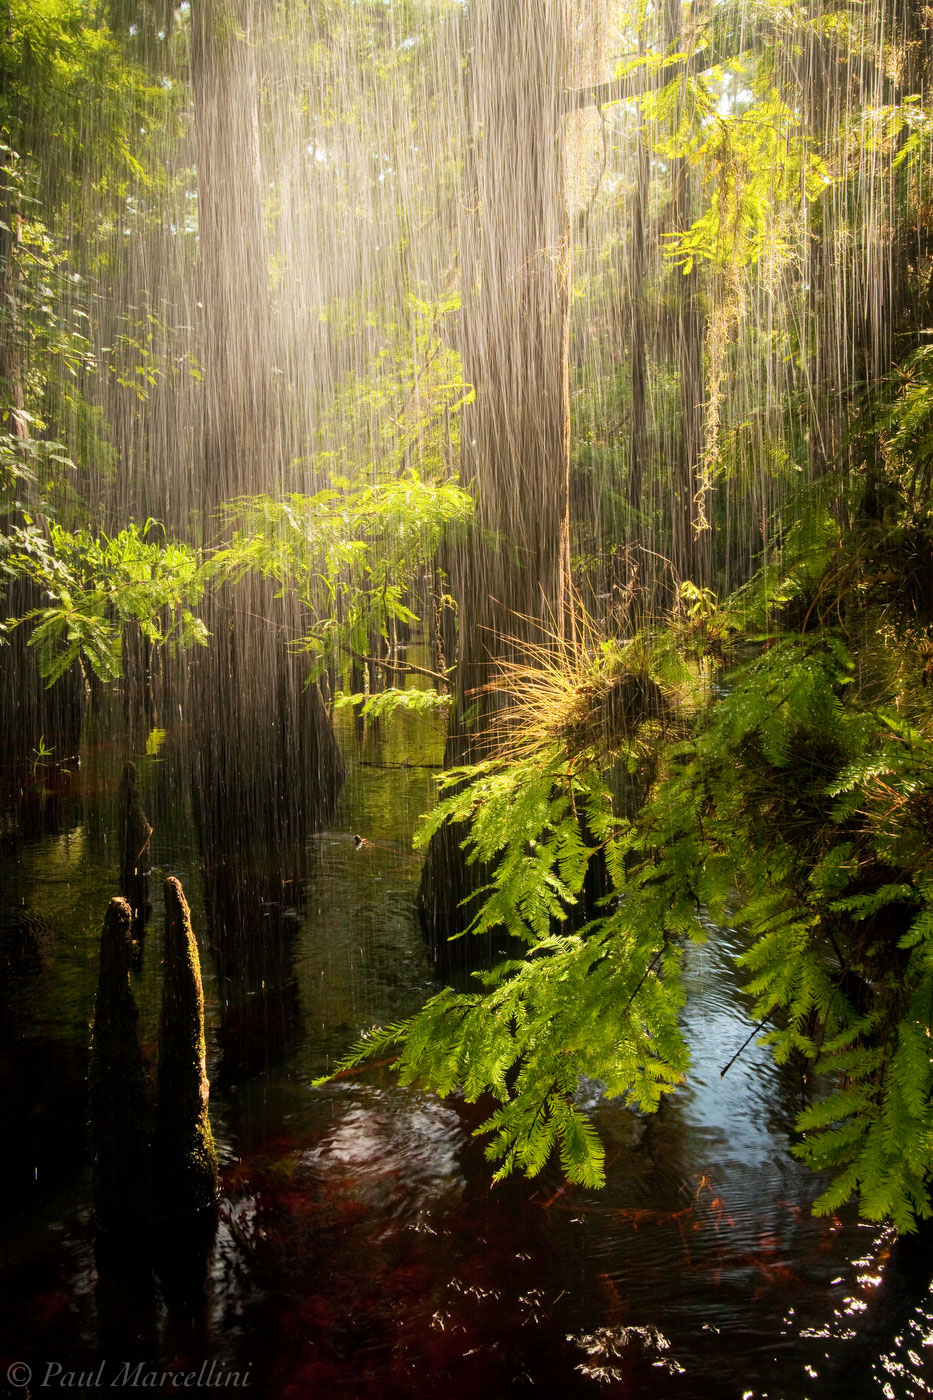 SunShower  Fisheating Creek  Florida Landscape Photography by Paul Marcellini # Sunshower Tune_204549